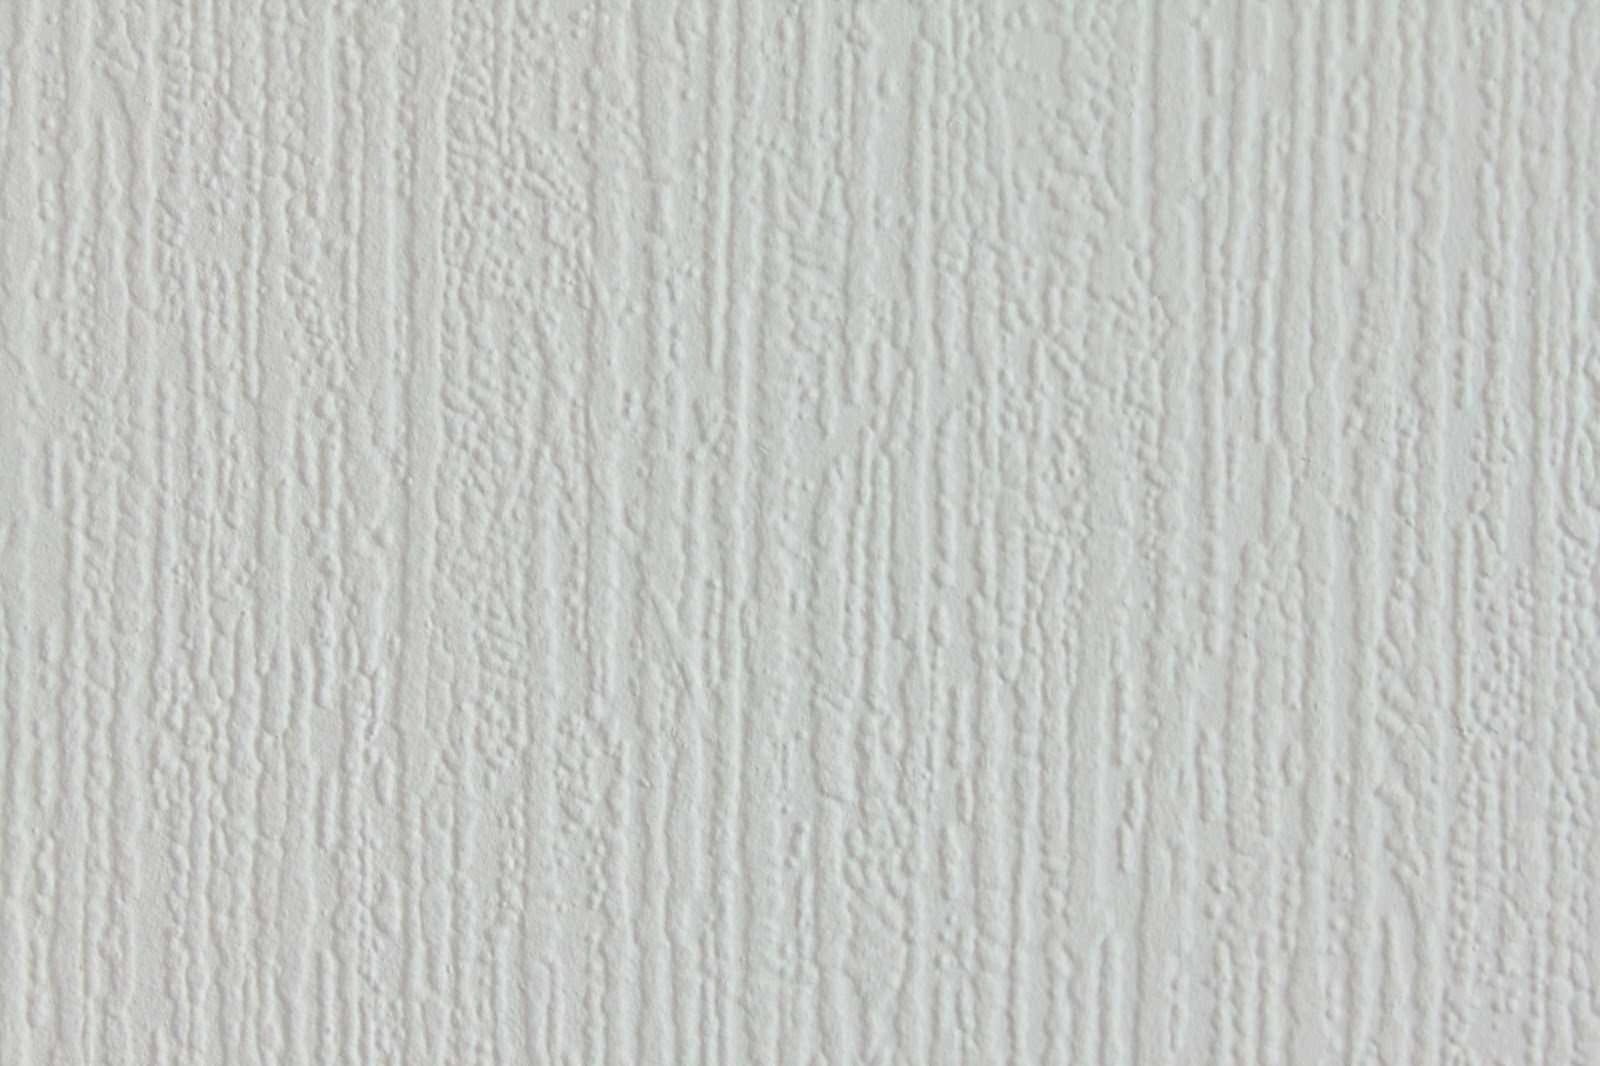 White stucco plaster wall paper texture